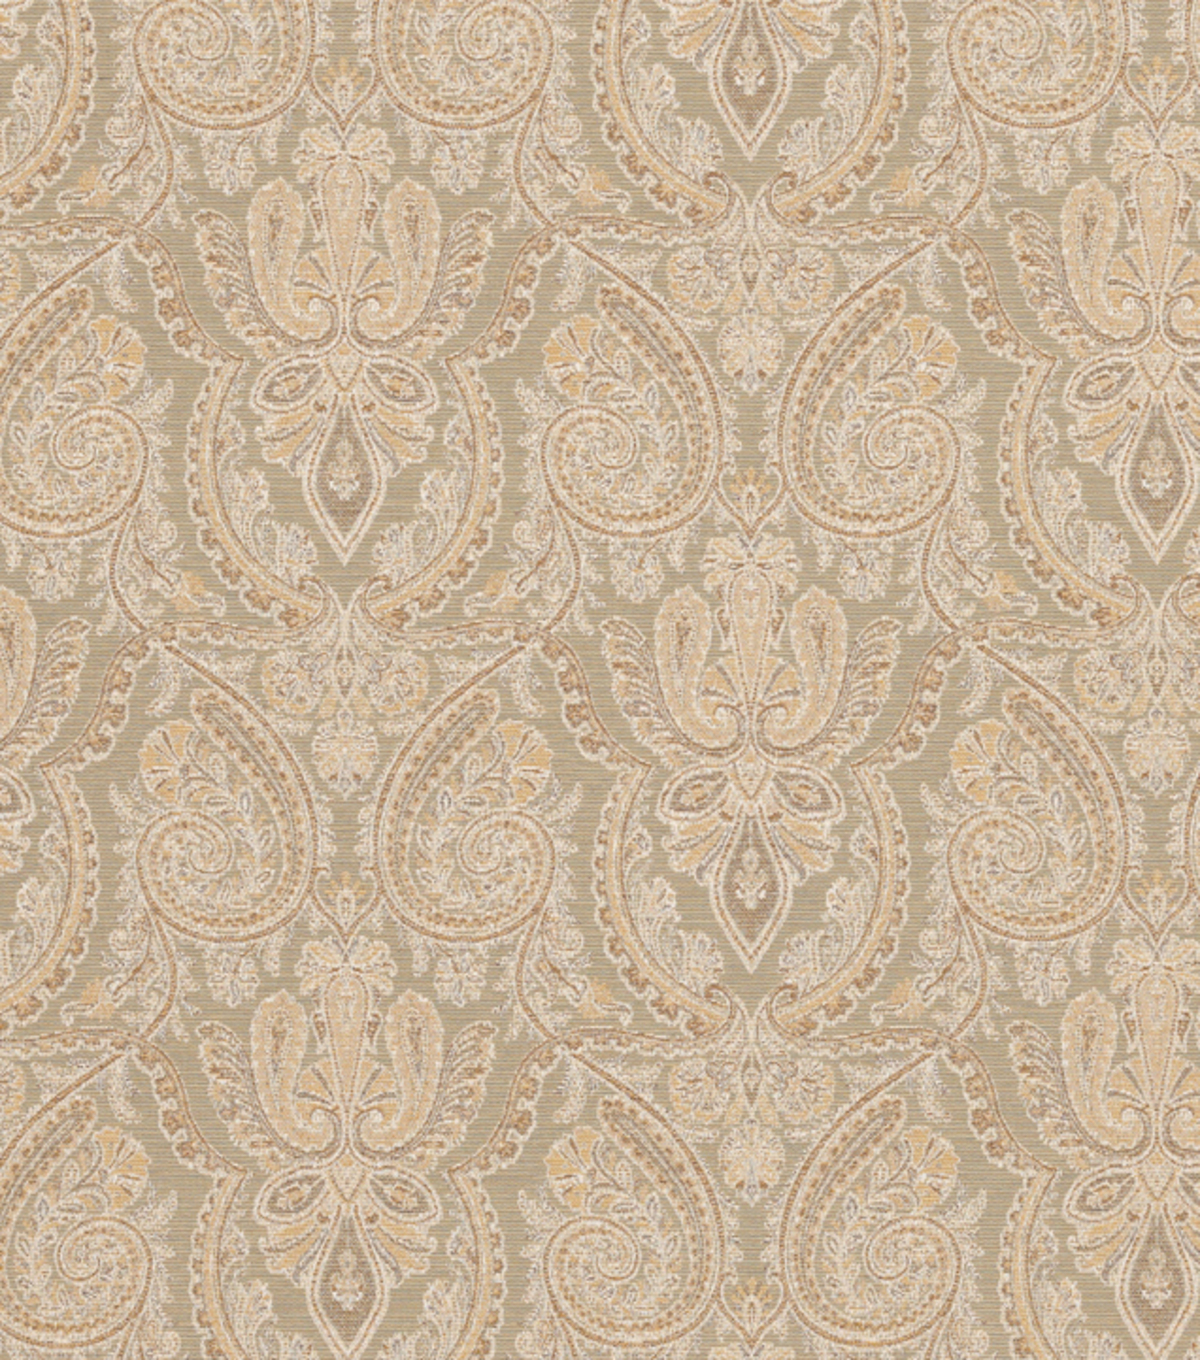 Home Decor 8\u0022x8\u0022 Fabric Swatch-Kenson Mocha